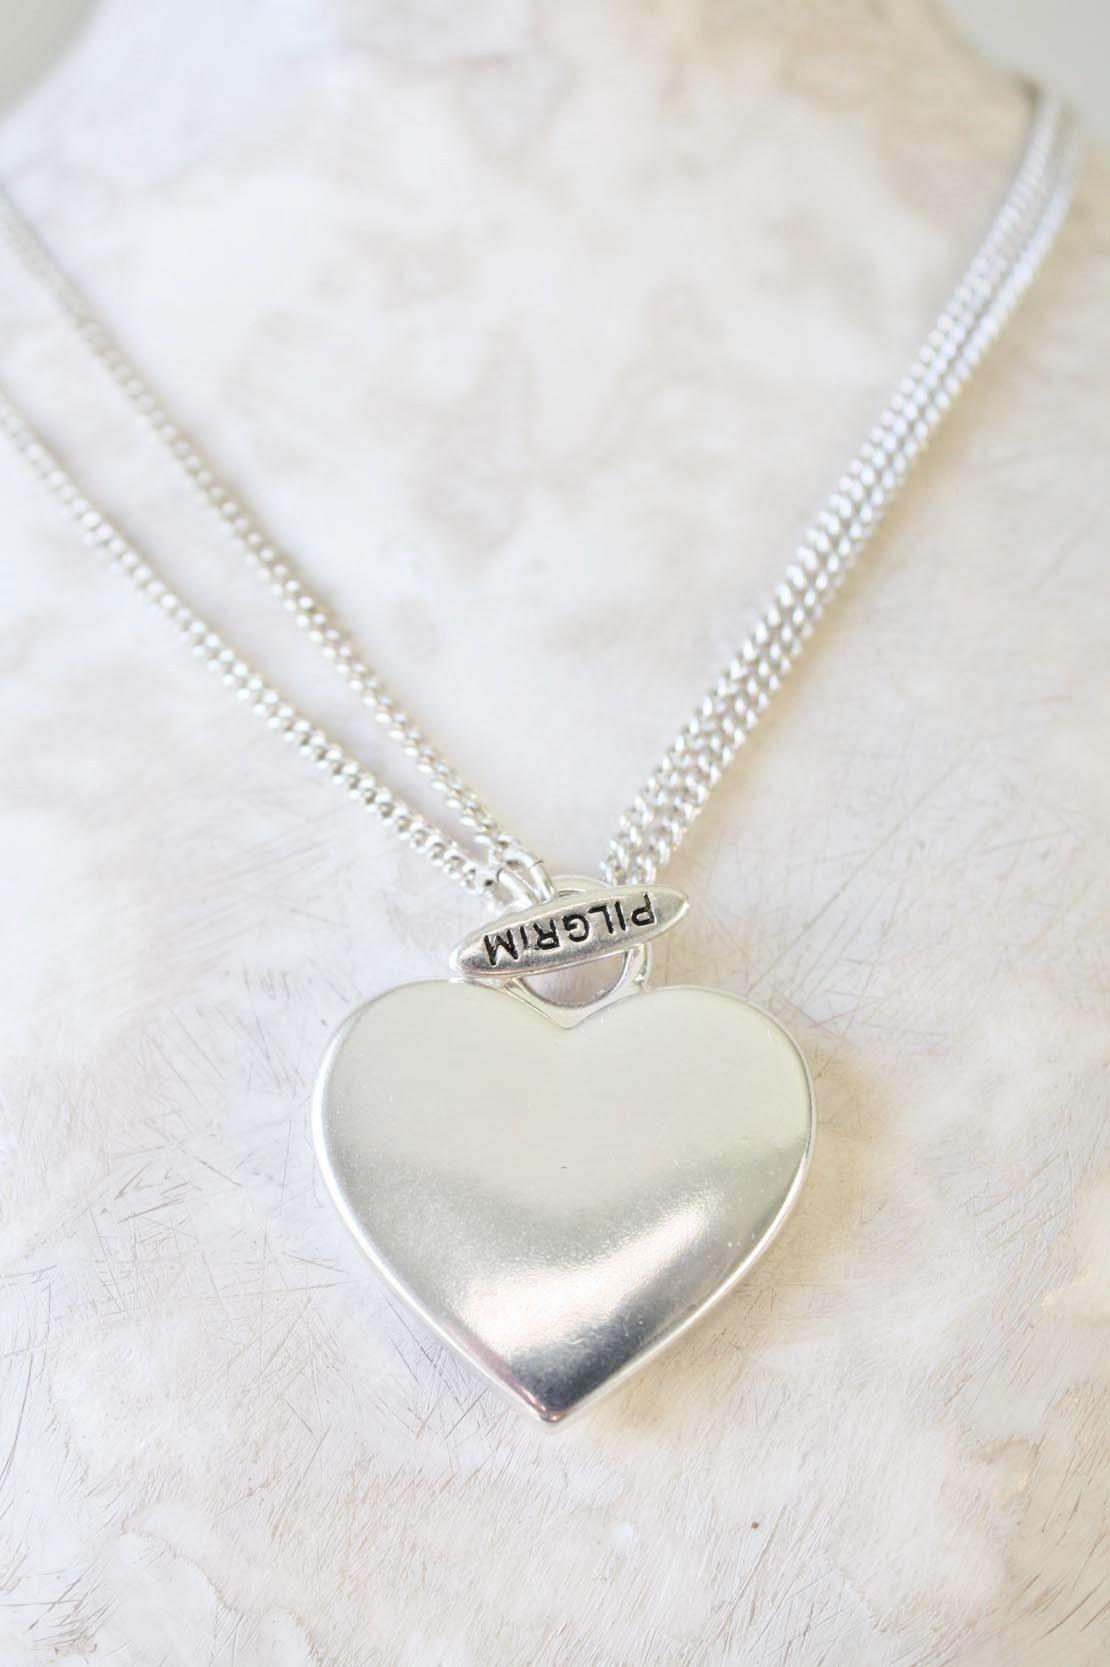 lover pendant dad engraved stainless photo open heart product funeral store jewelry text commemorate steel necklace flat to s can urn cremation